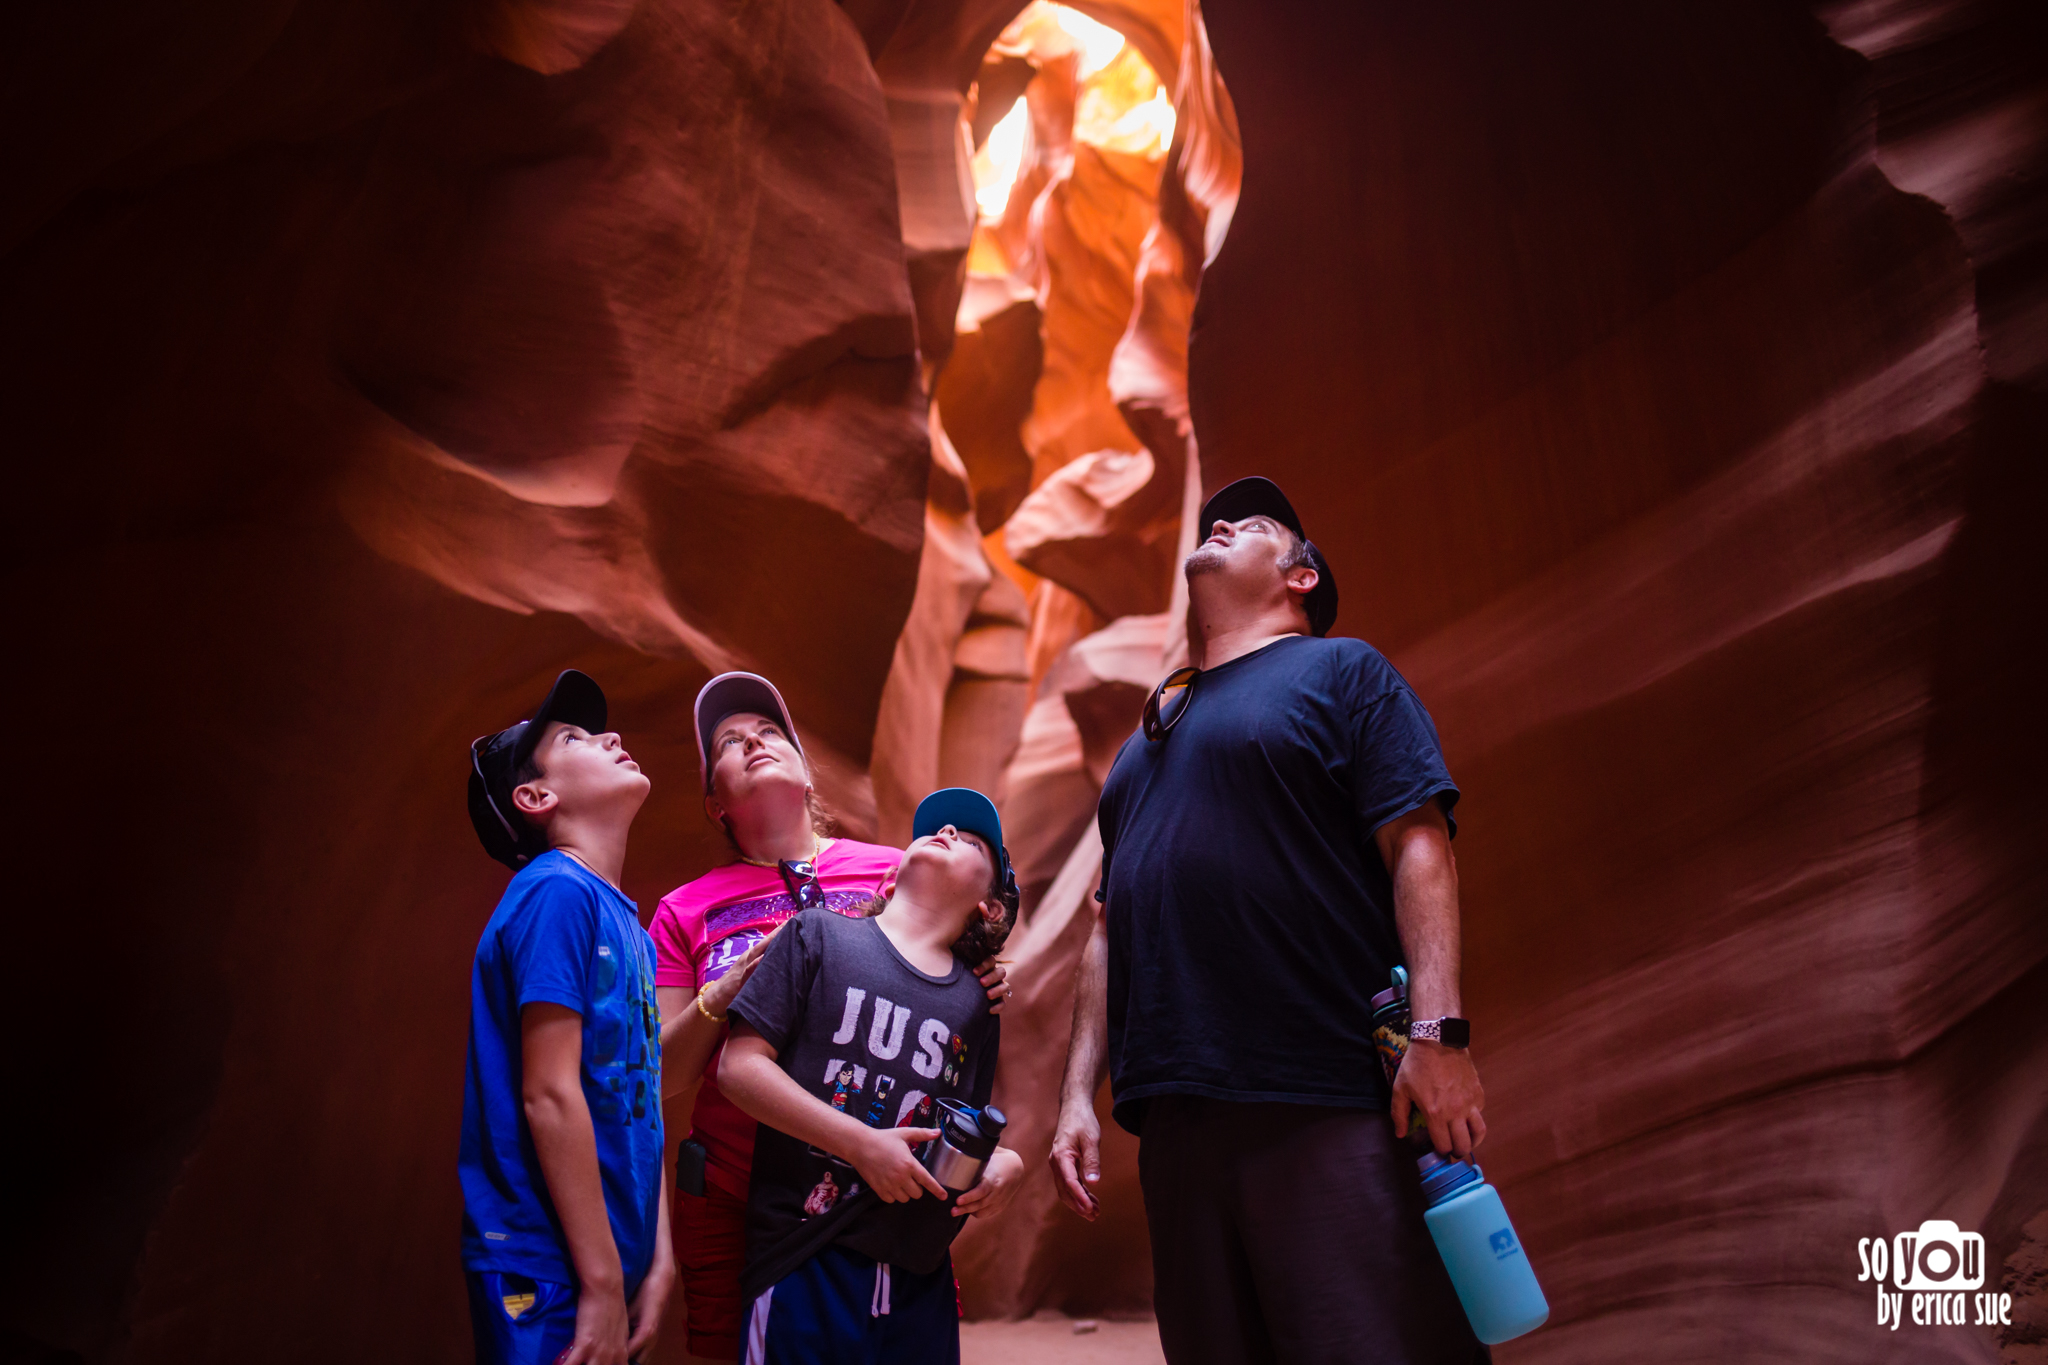 so-you-by-erica-sue-travel-grand-canyon-antelope-canyon-cosanti-arizona-9282.jpg